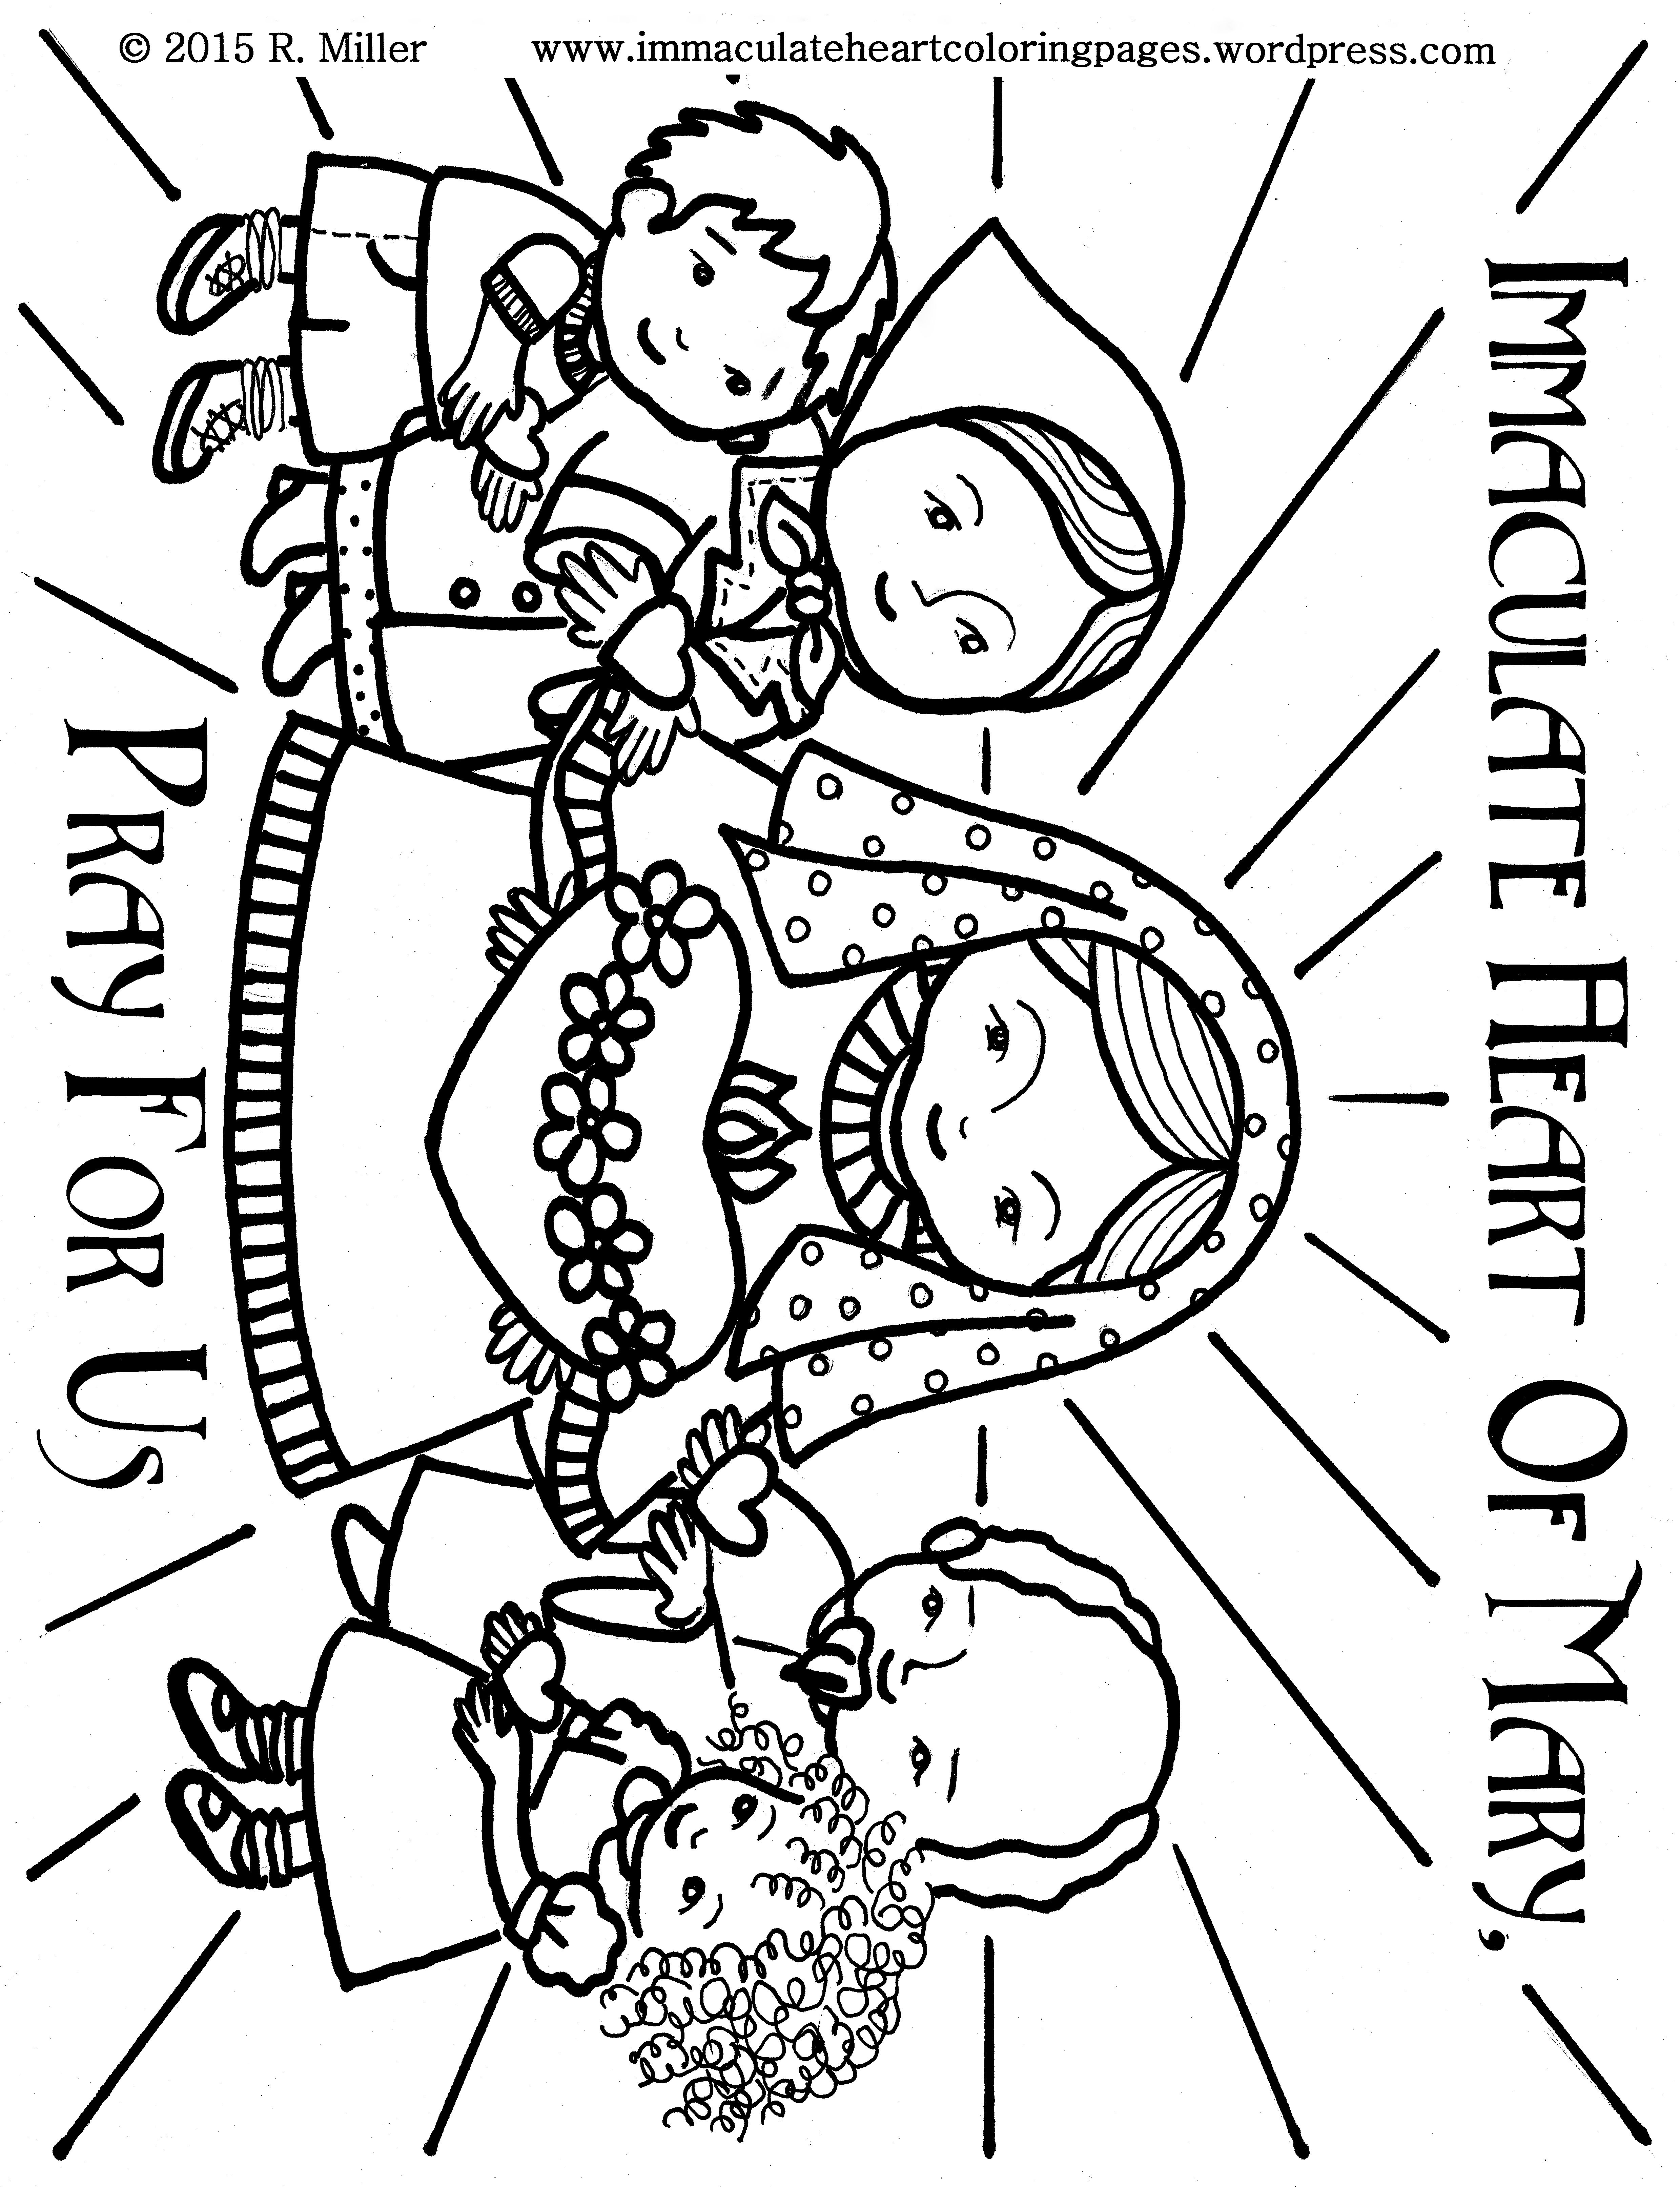 Immaculate Heart Of Mary Pray For Us Coloring Page Free To Print